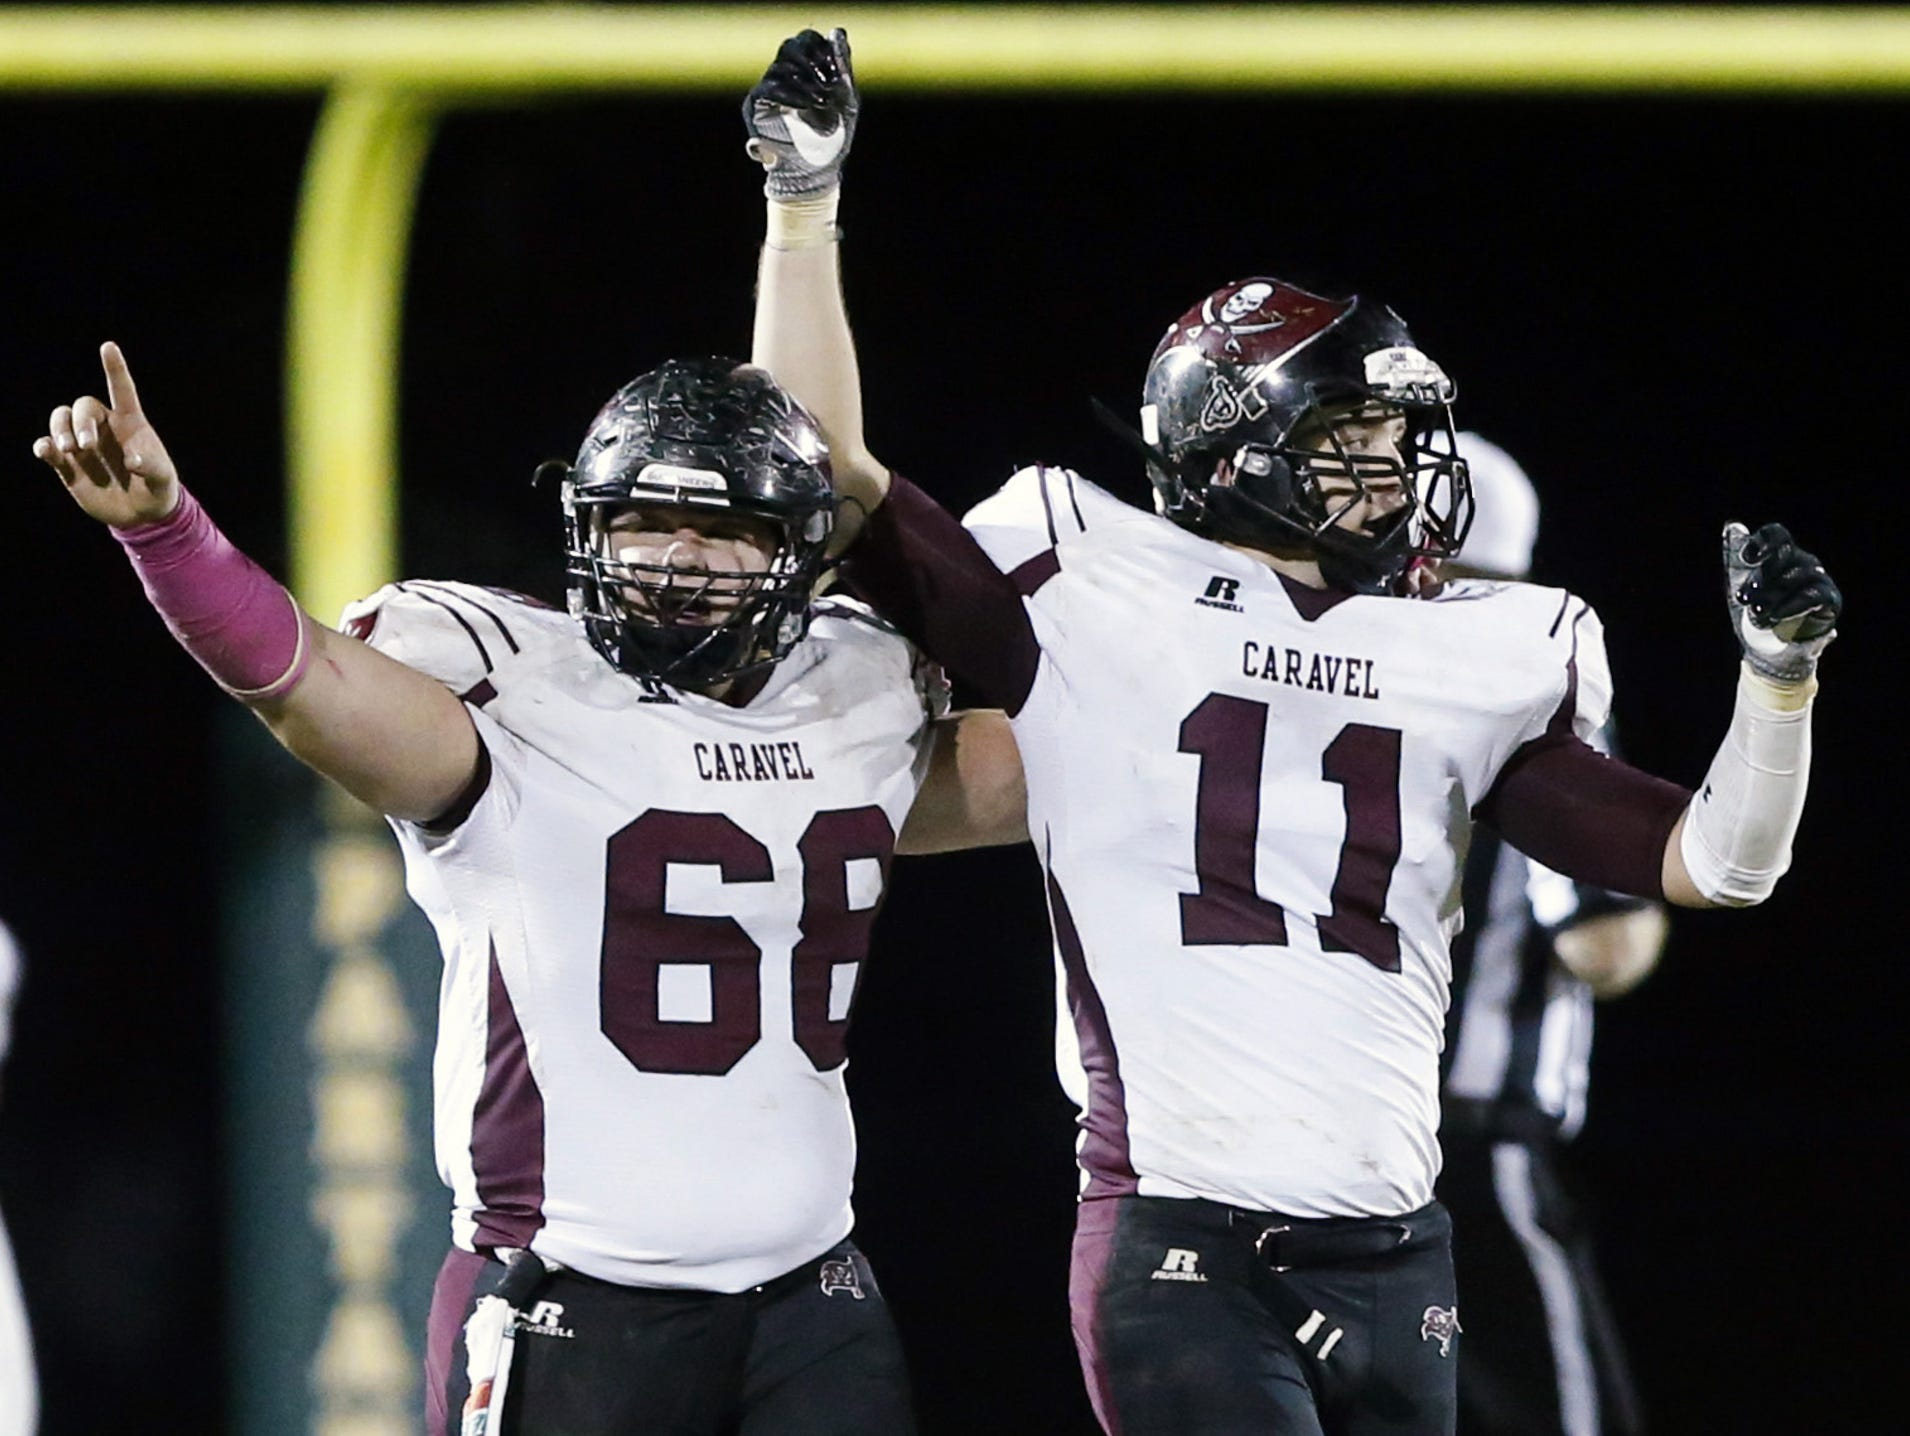 Caravel's Jacob Reed (left) and Matt Bowe celebrate after the Buccaneers edged St. Mark's 7-0 on Oct. 14. Brad Myers is picking Caravel to win a close game at Cape Henlopen on Friday, while Matt Kalin predicts the Vikings will prevail.